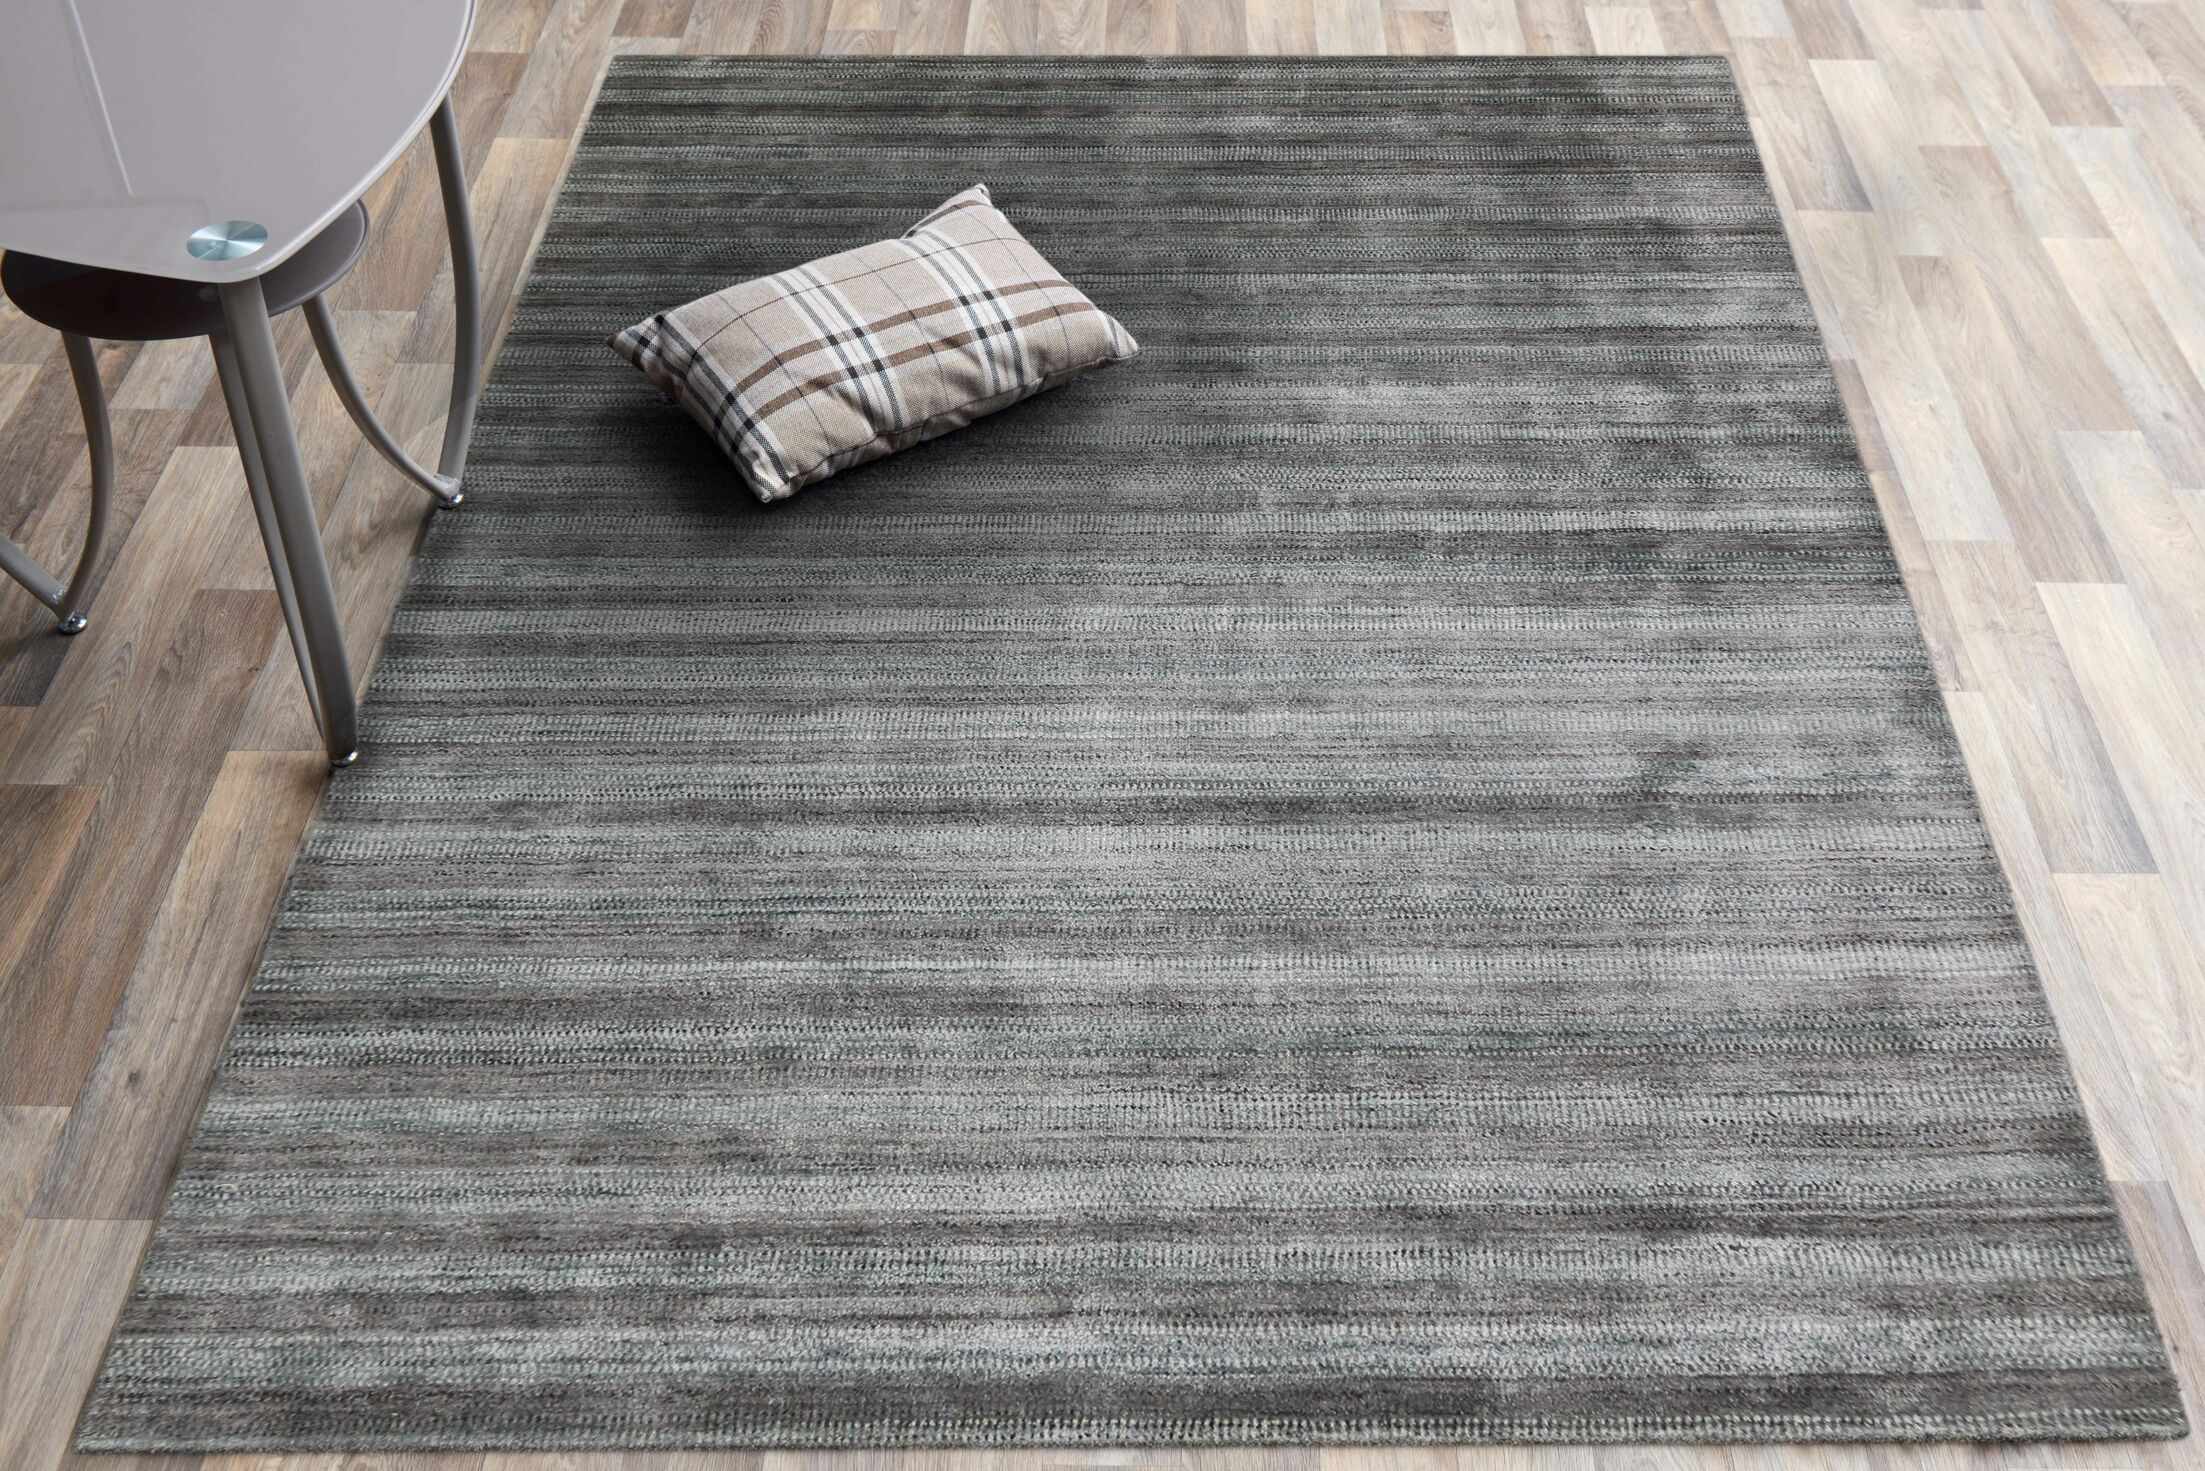 Adamsburg Hand-Woven Silver/Gray Area Rug Rug Size: Rectangle 3' x 5'